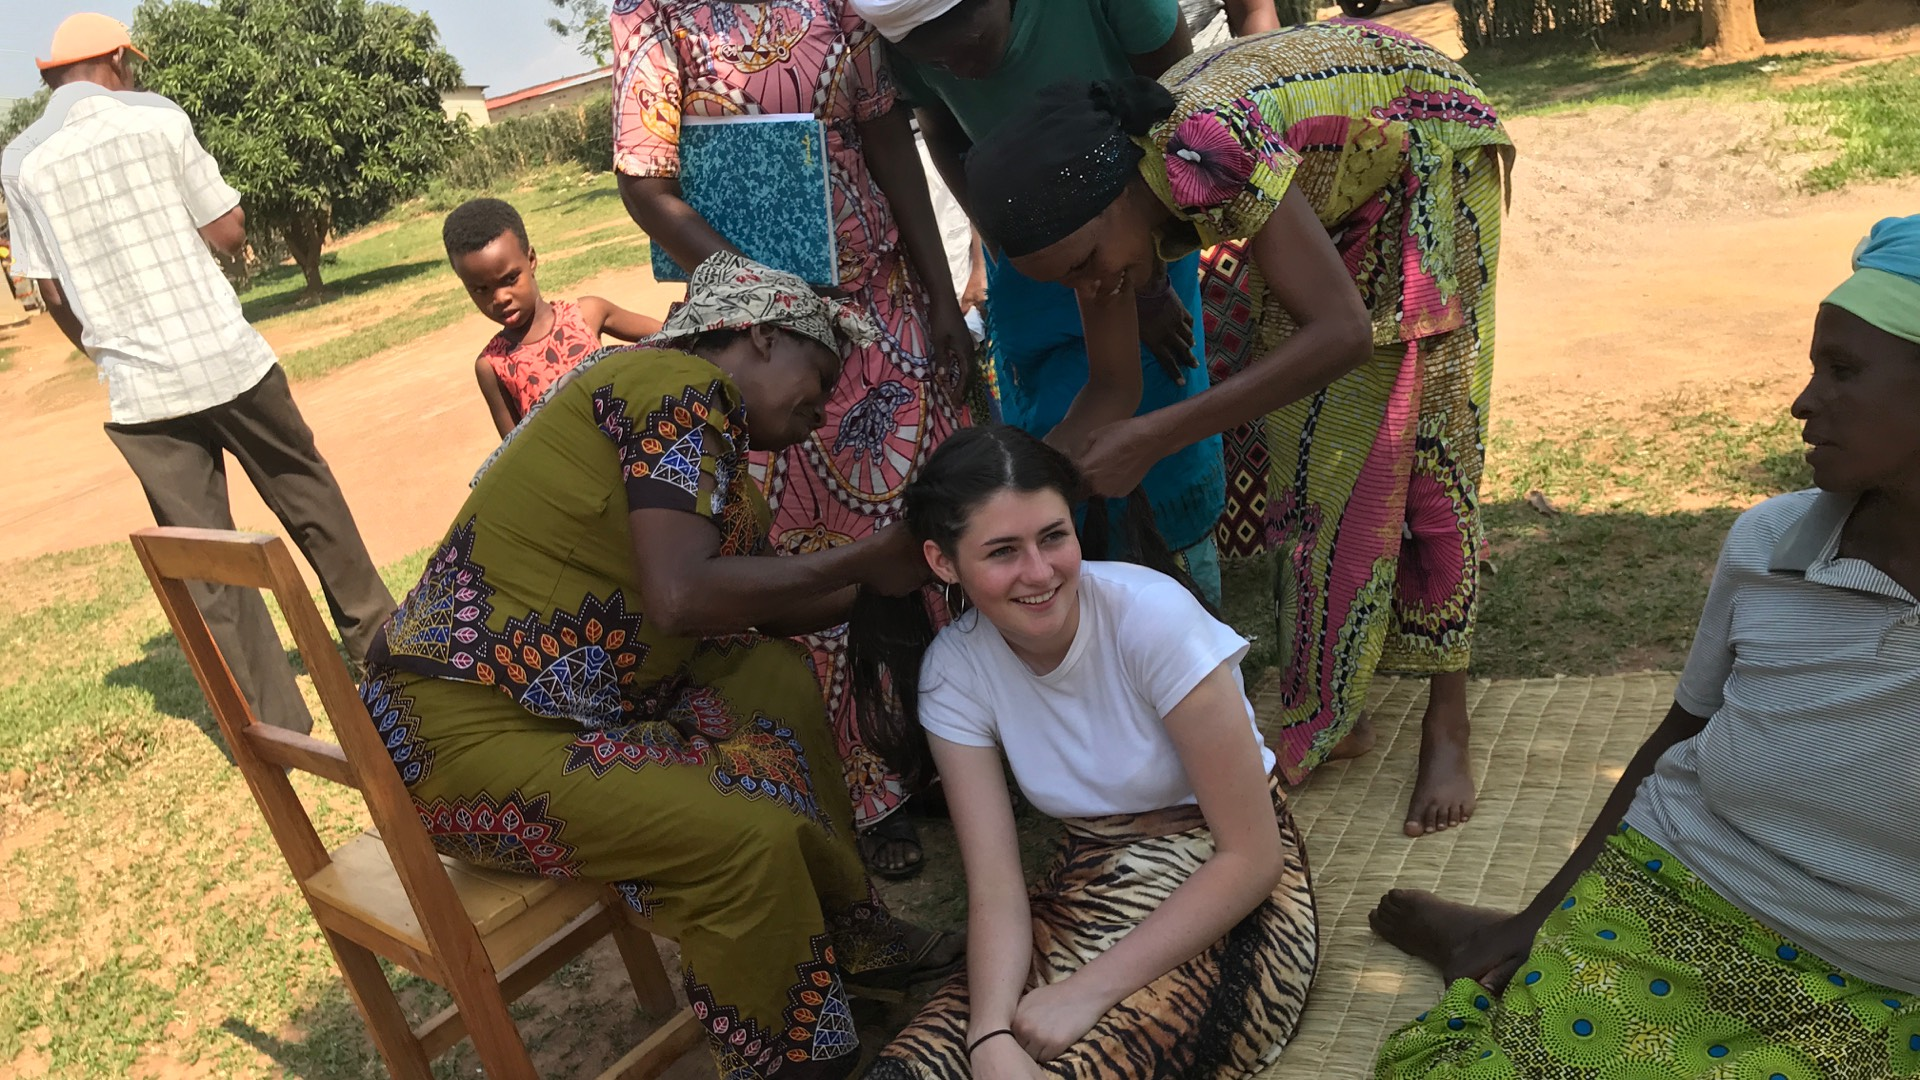 Ottawa teen helps raise money for a reconciliation village in Rwanda. [Photo © Sarah MacFadyen]